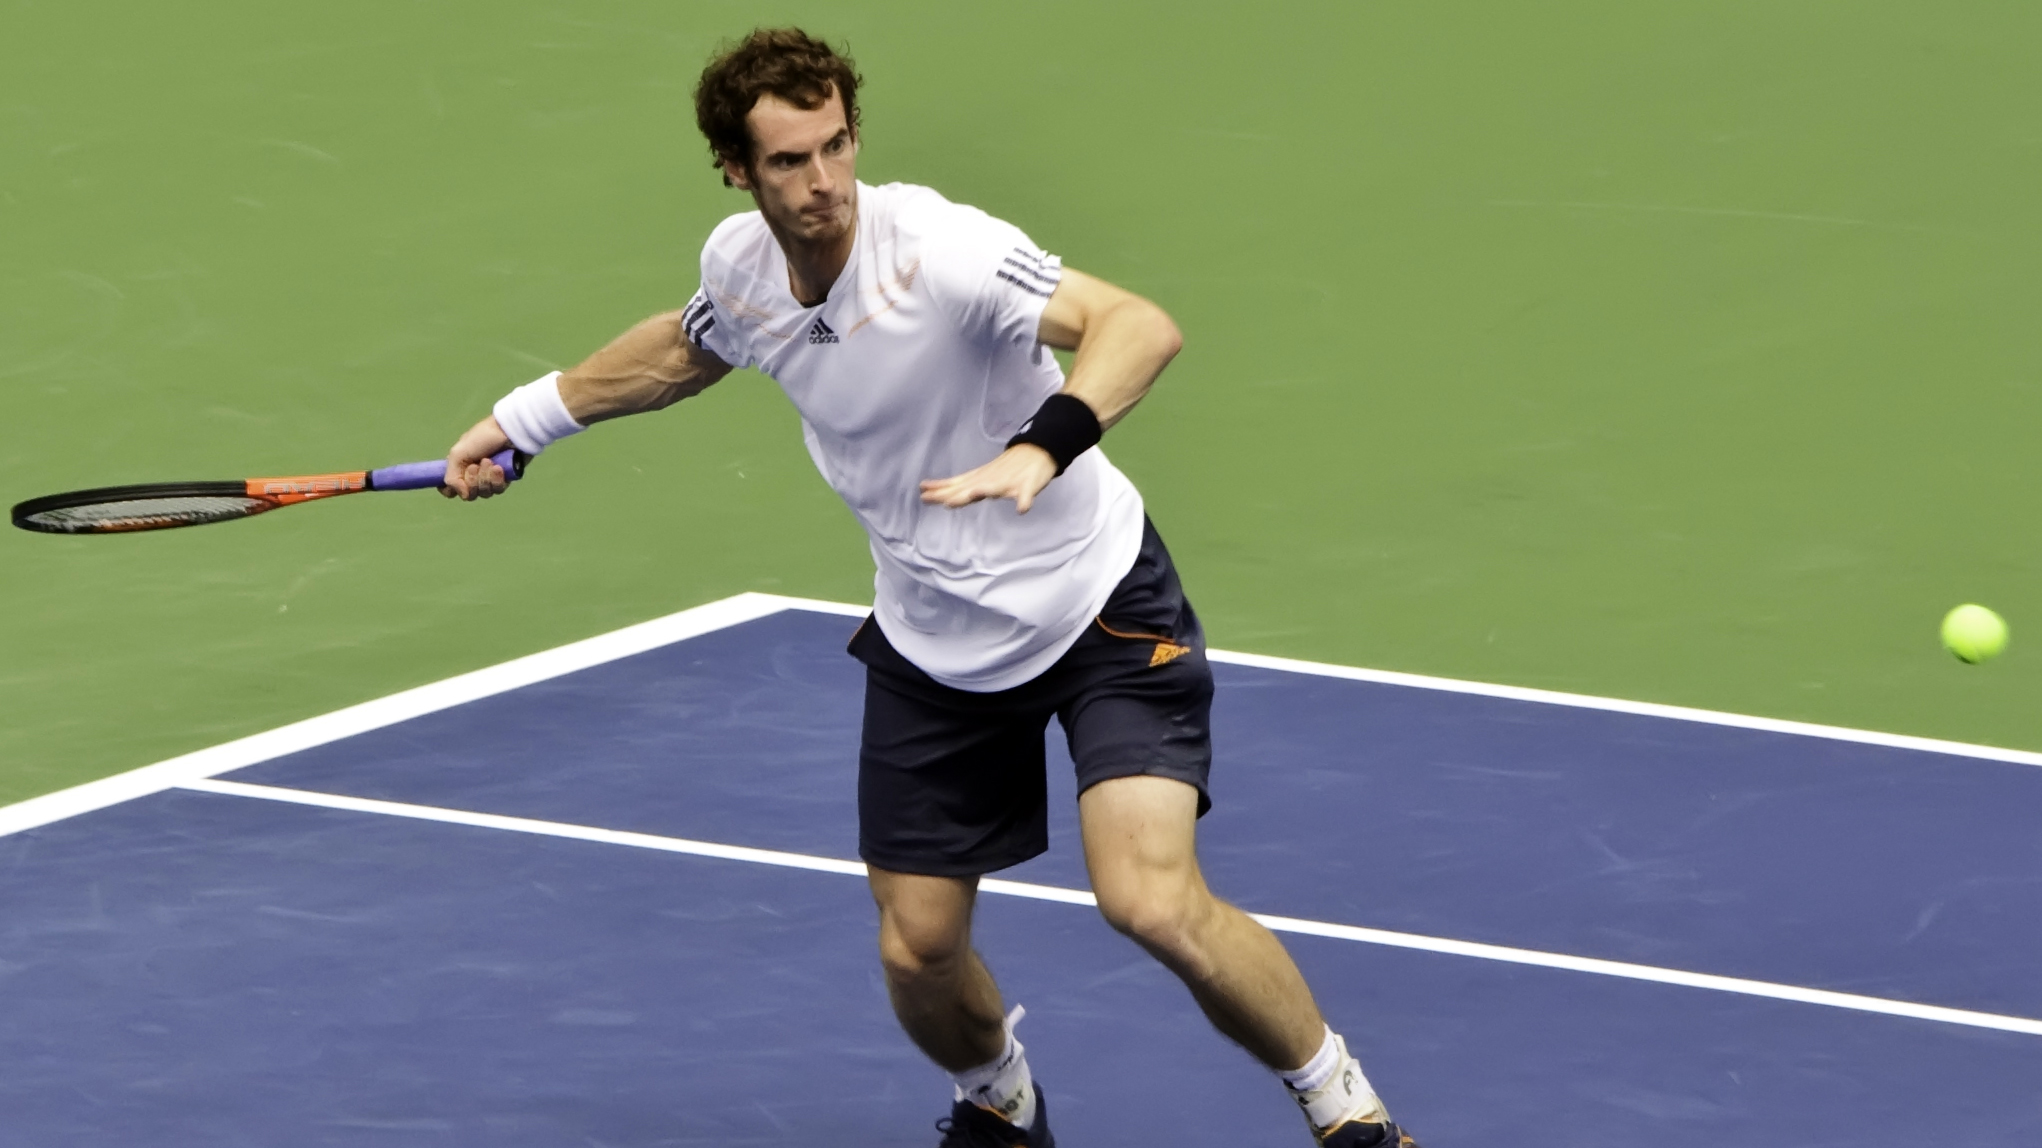 Andy Murray. Photo: Flickr, Francisco Diez